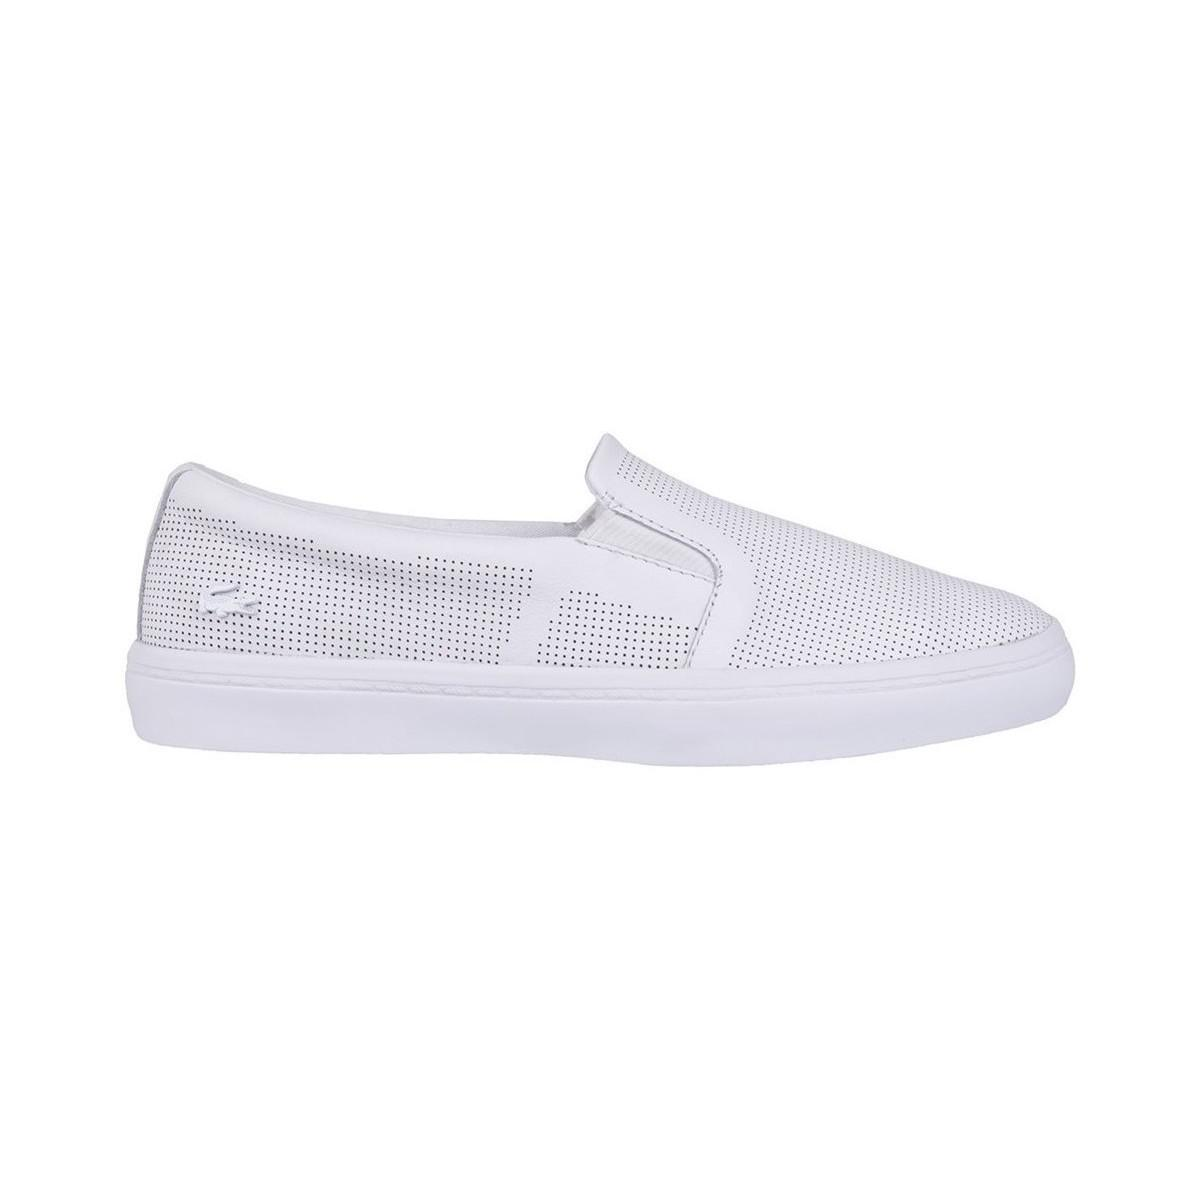 97309728f Lacoste Gazon Slip On Women s Slip-ons (shoes) In White in White ...